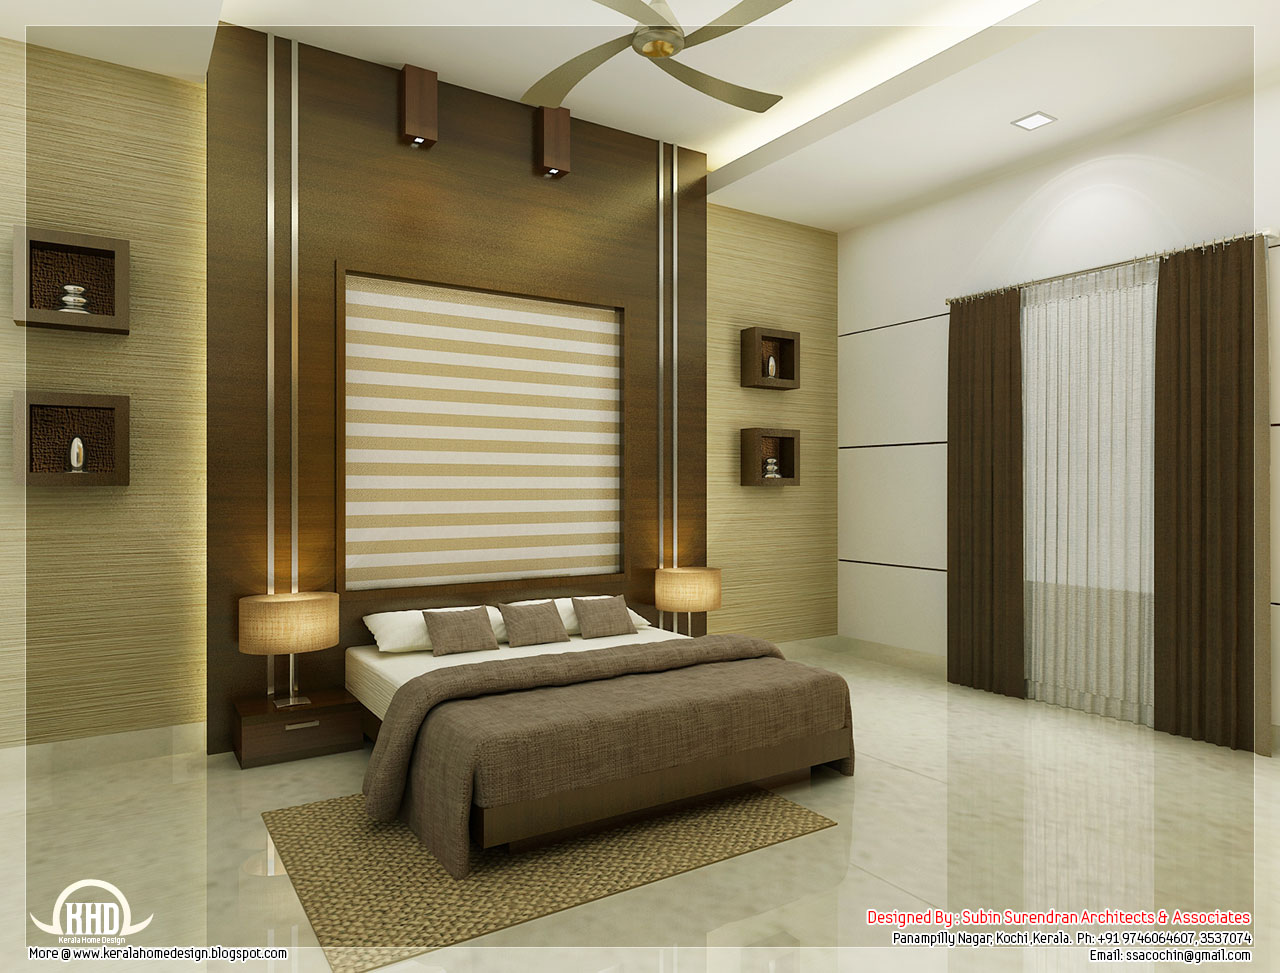 Beautiful bedroom interior designs by Subin Surendran Architects